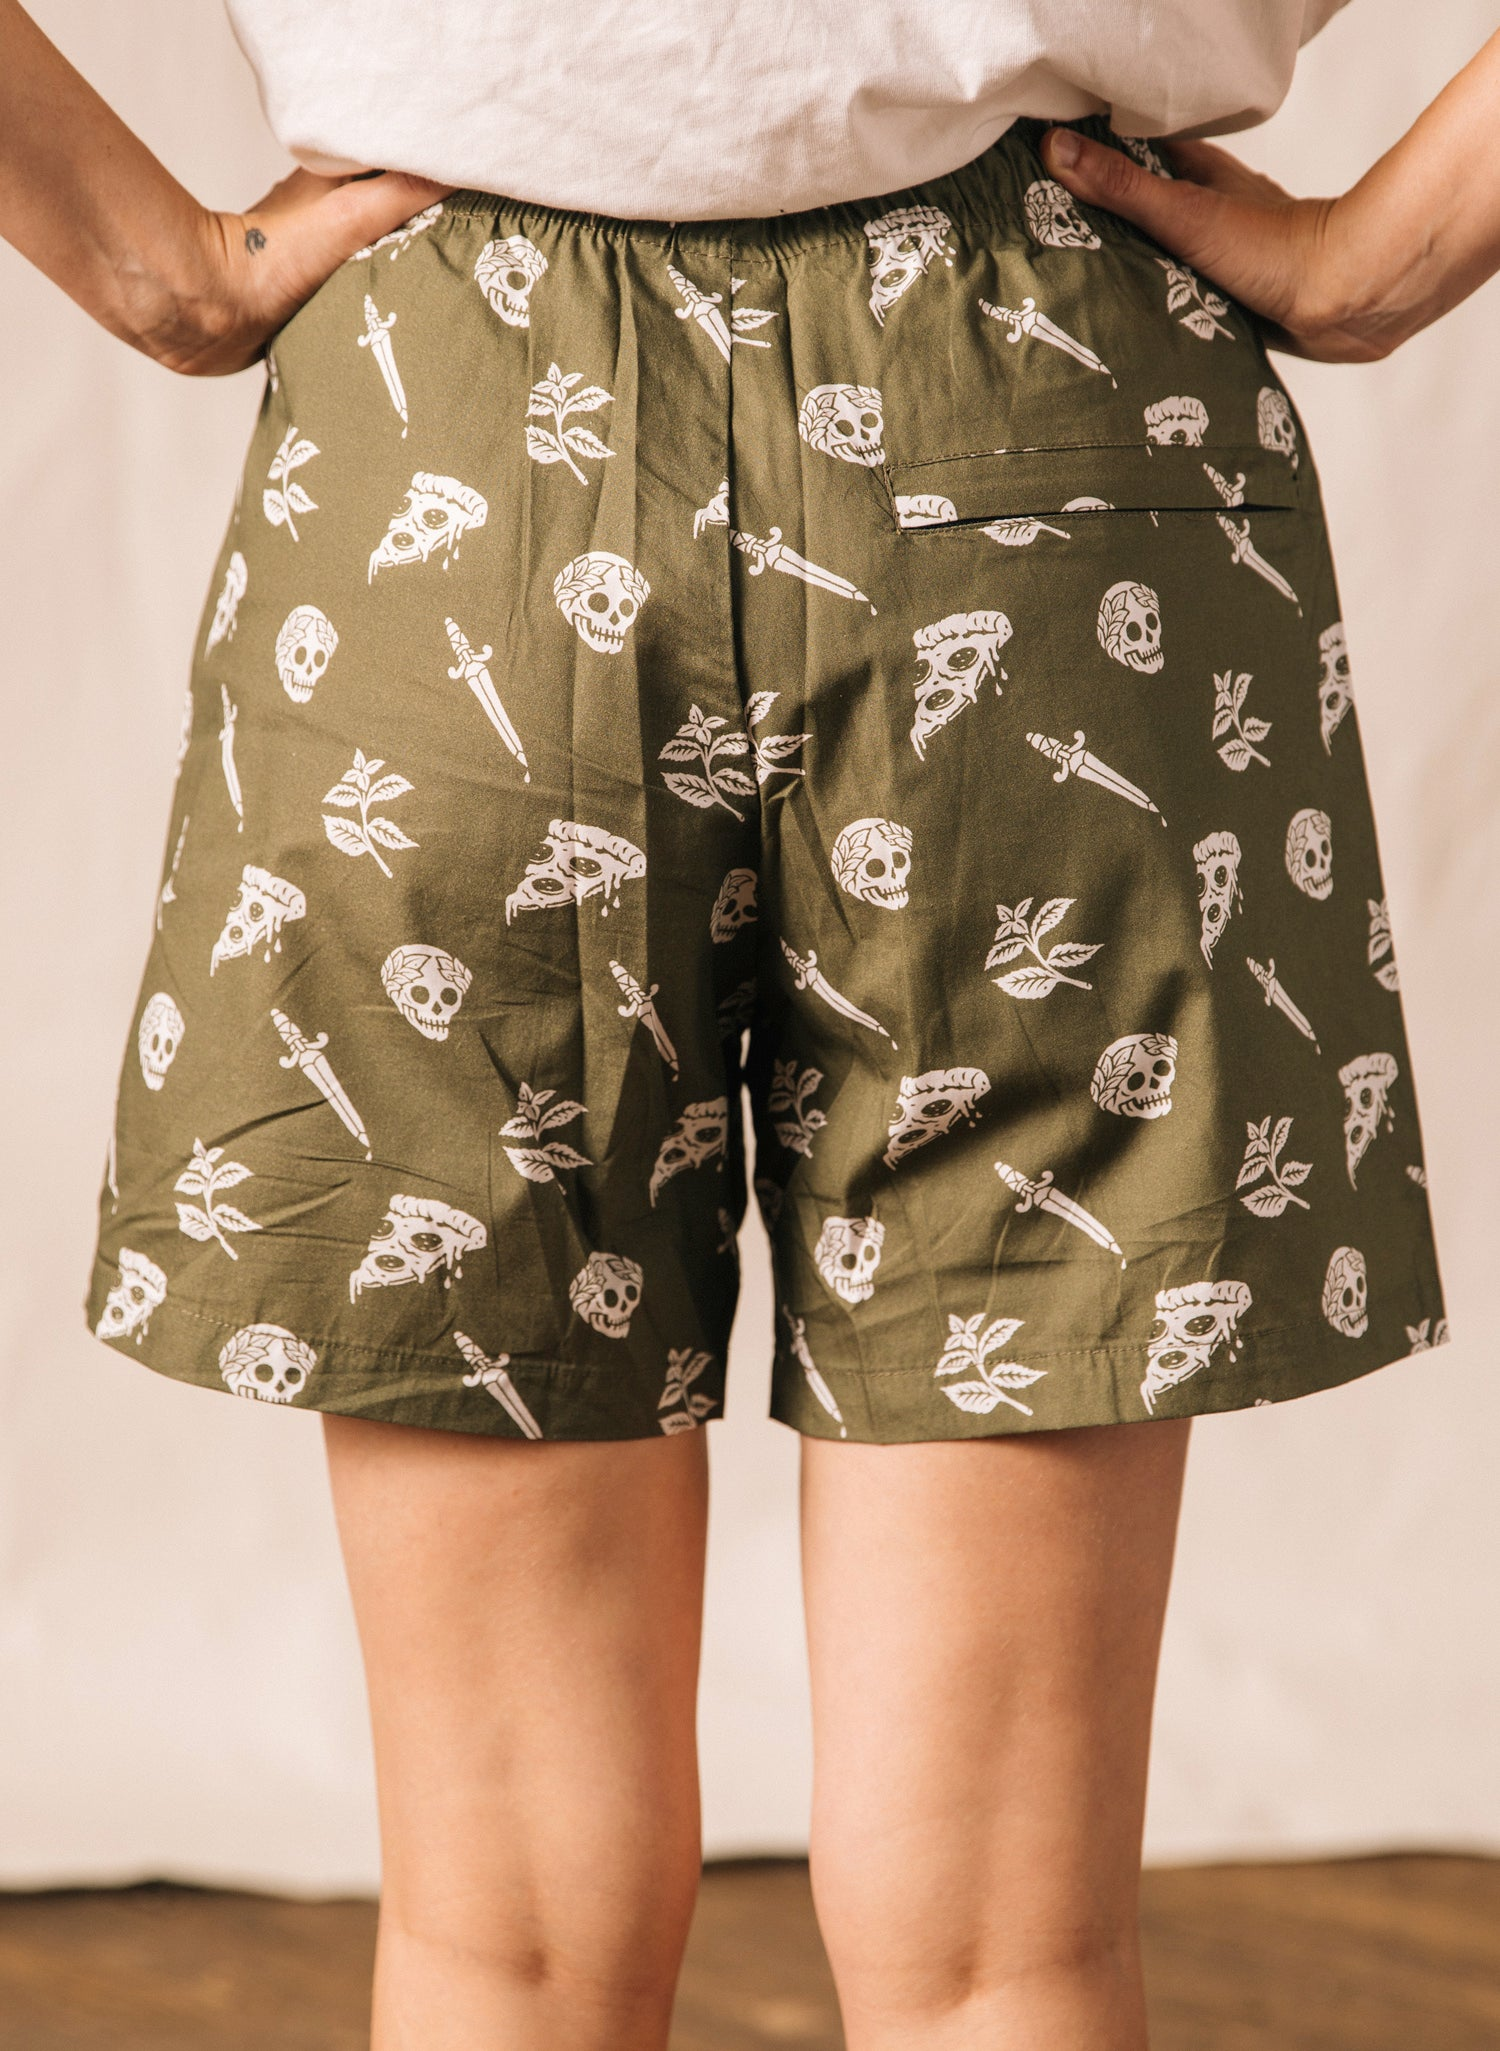 Pizza Slayer Pizza Slice Skulls Foodie Walk Shorts Food Baggies